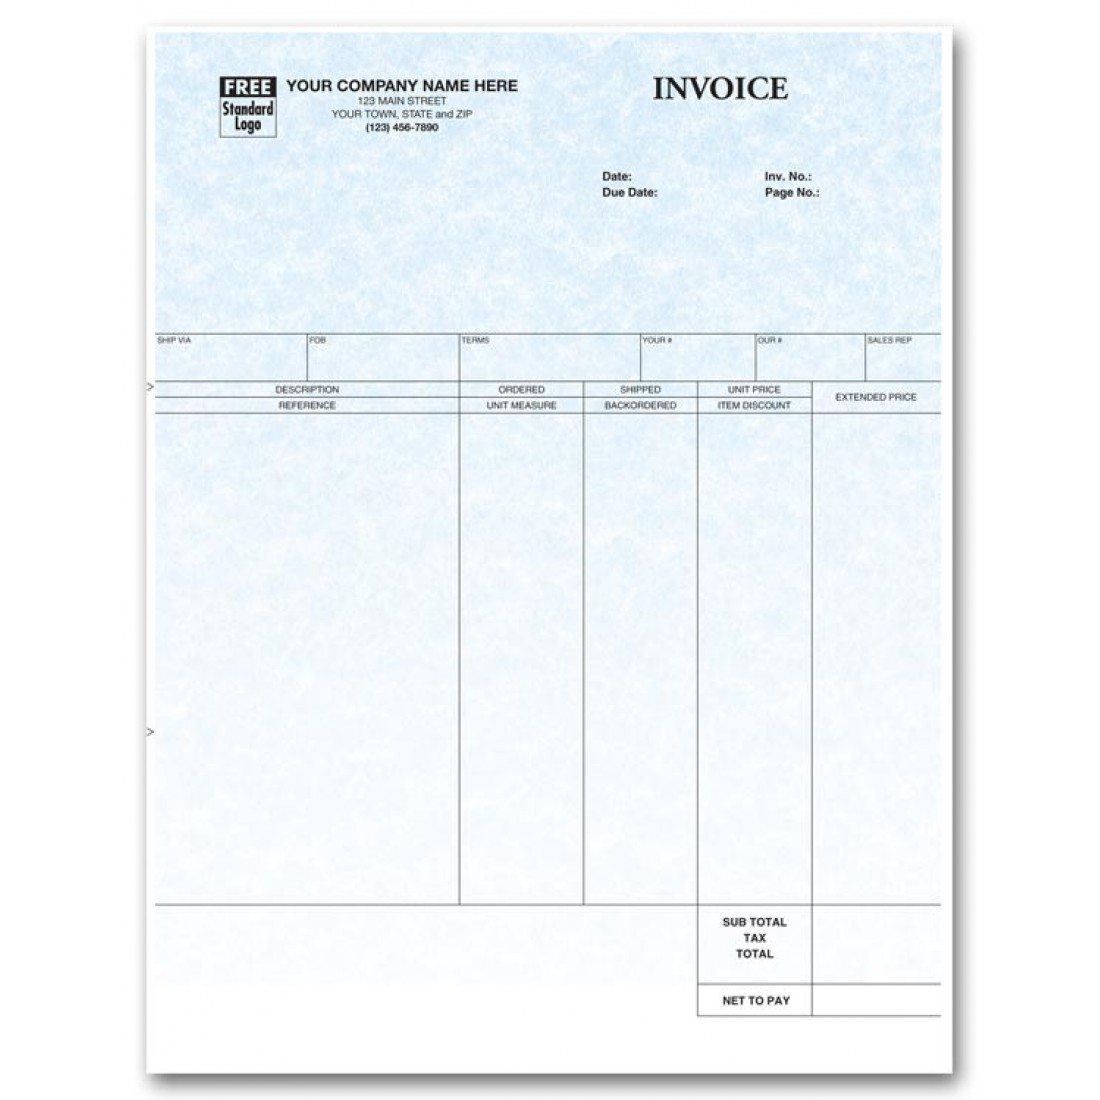 General Laser Invoice for DacEasy - Parchment